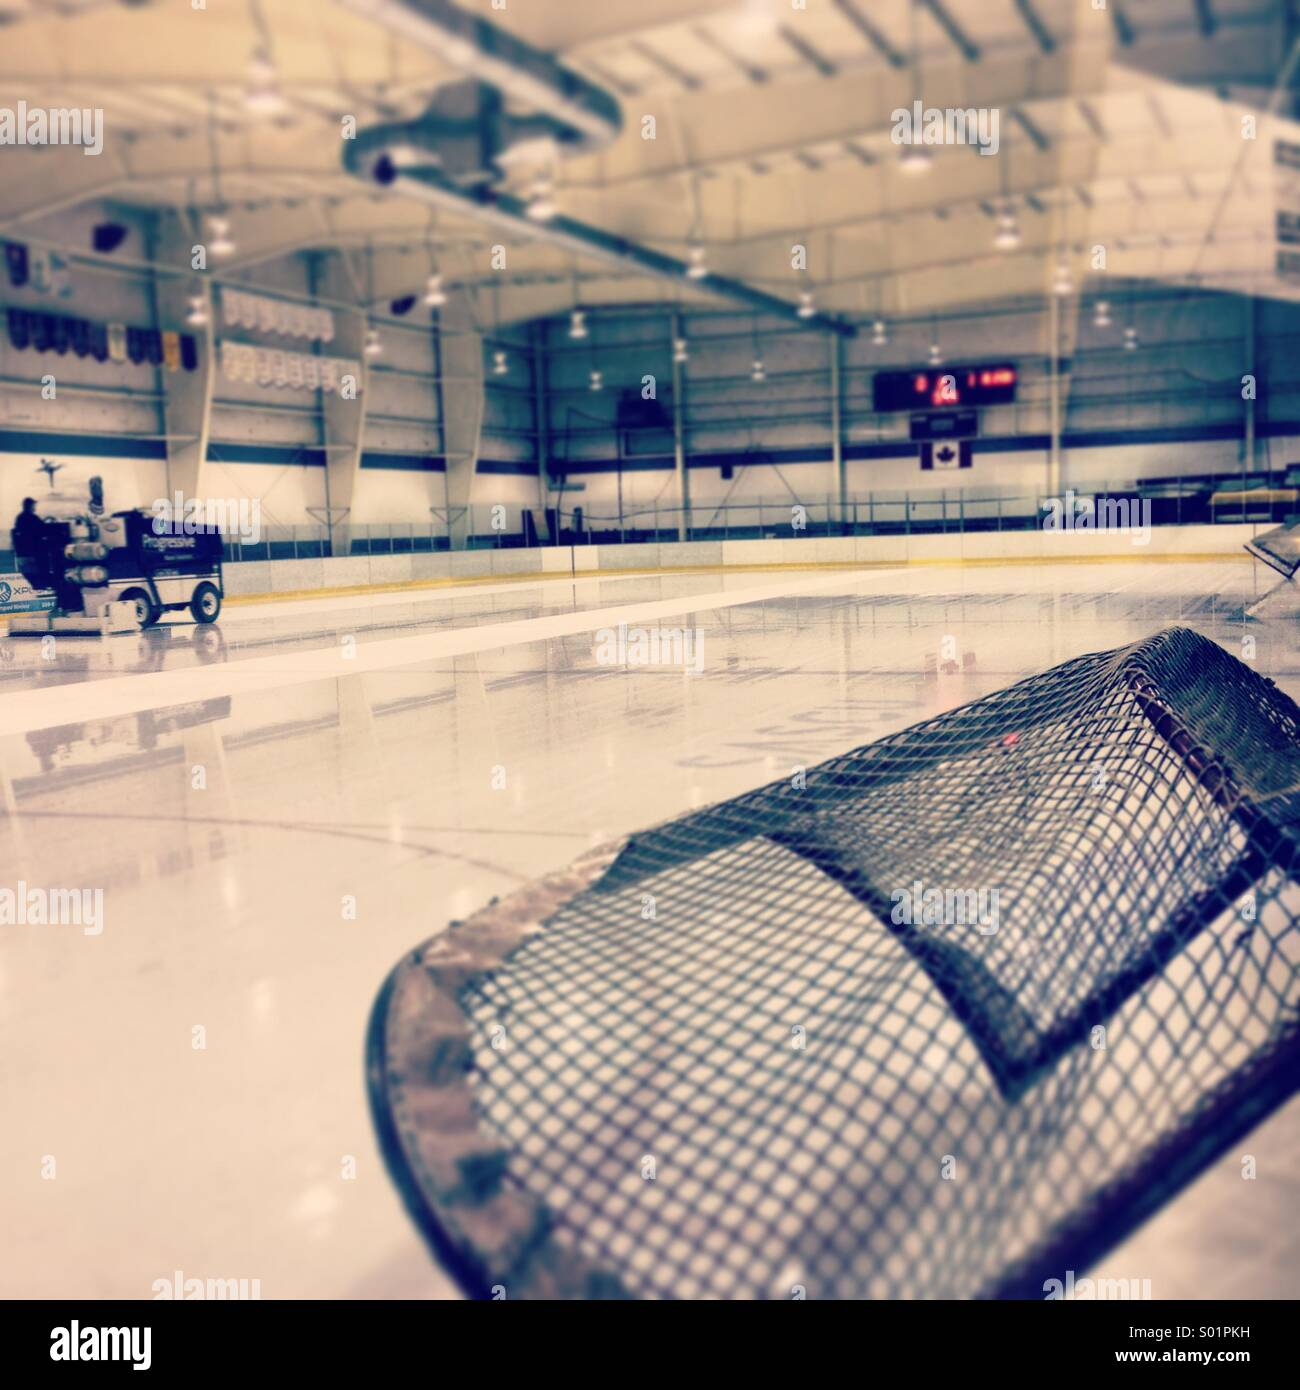 Ice clean at the hockey arena. - Stock Image